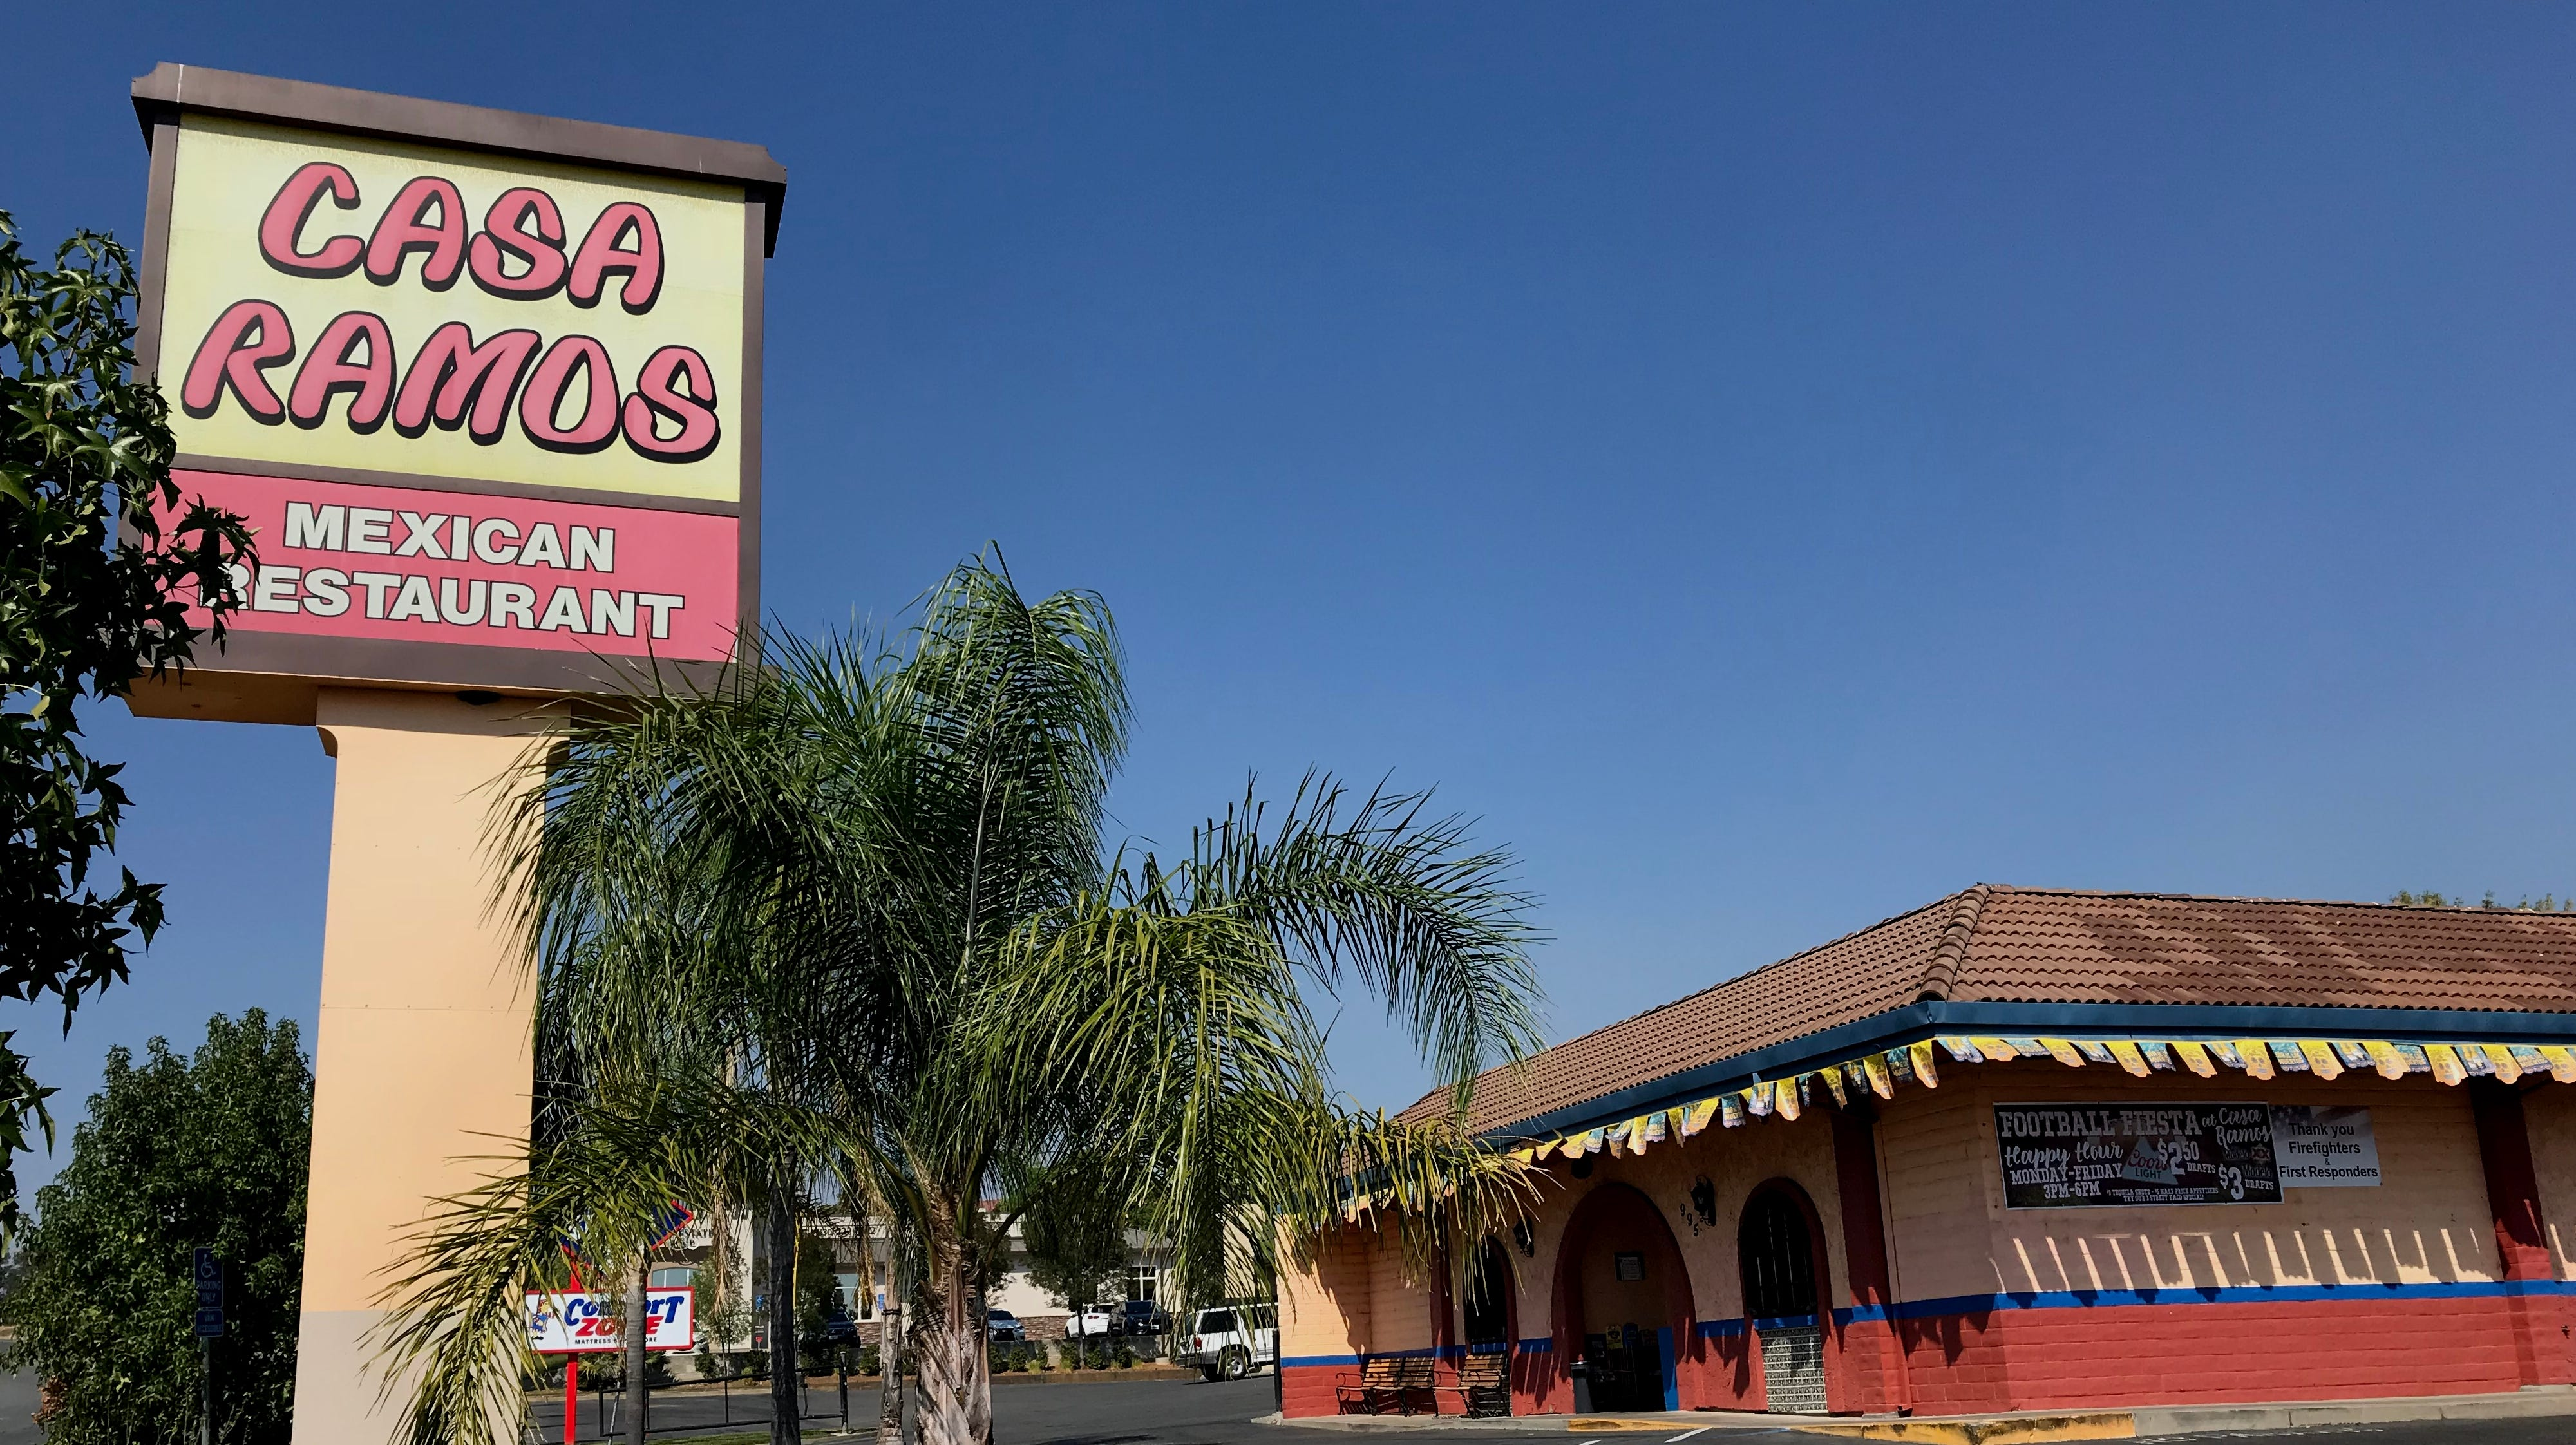 Casa Ramos restaurant off Hilltop Drive in Redding was closed and deserted Wednesday afternoon.